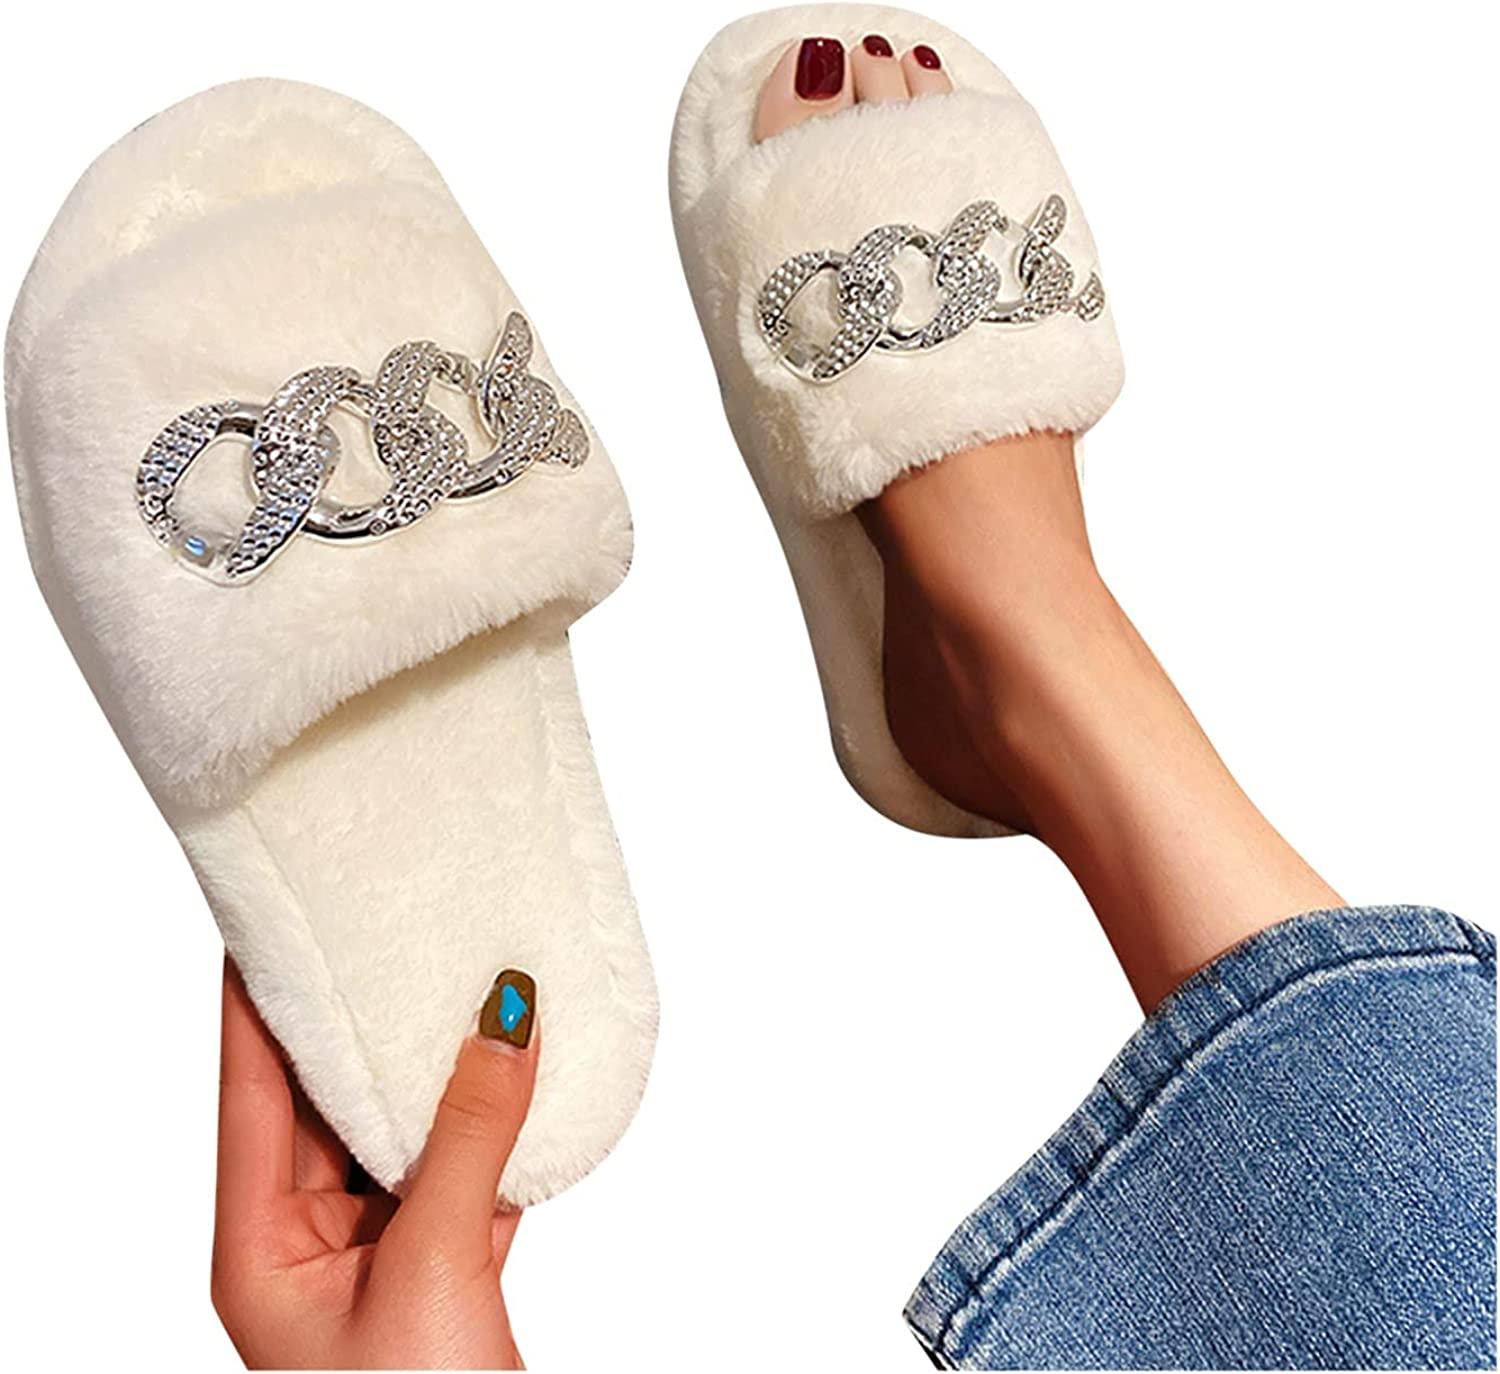 40% Max 49% OFF OFF Cheap Sale Hunauoo Slippers for Women Thick Furry Outdoor Col Pure